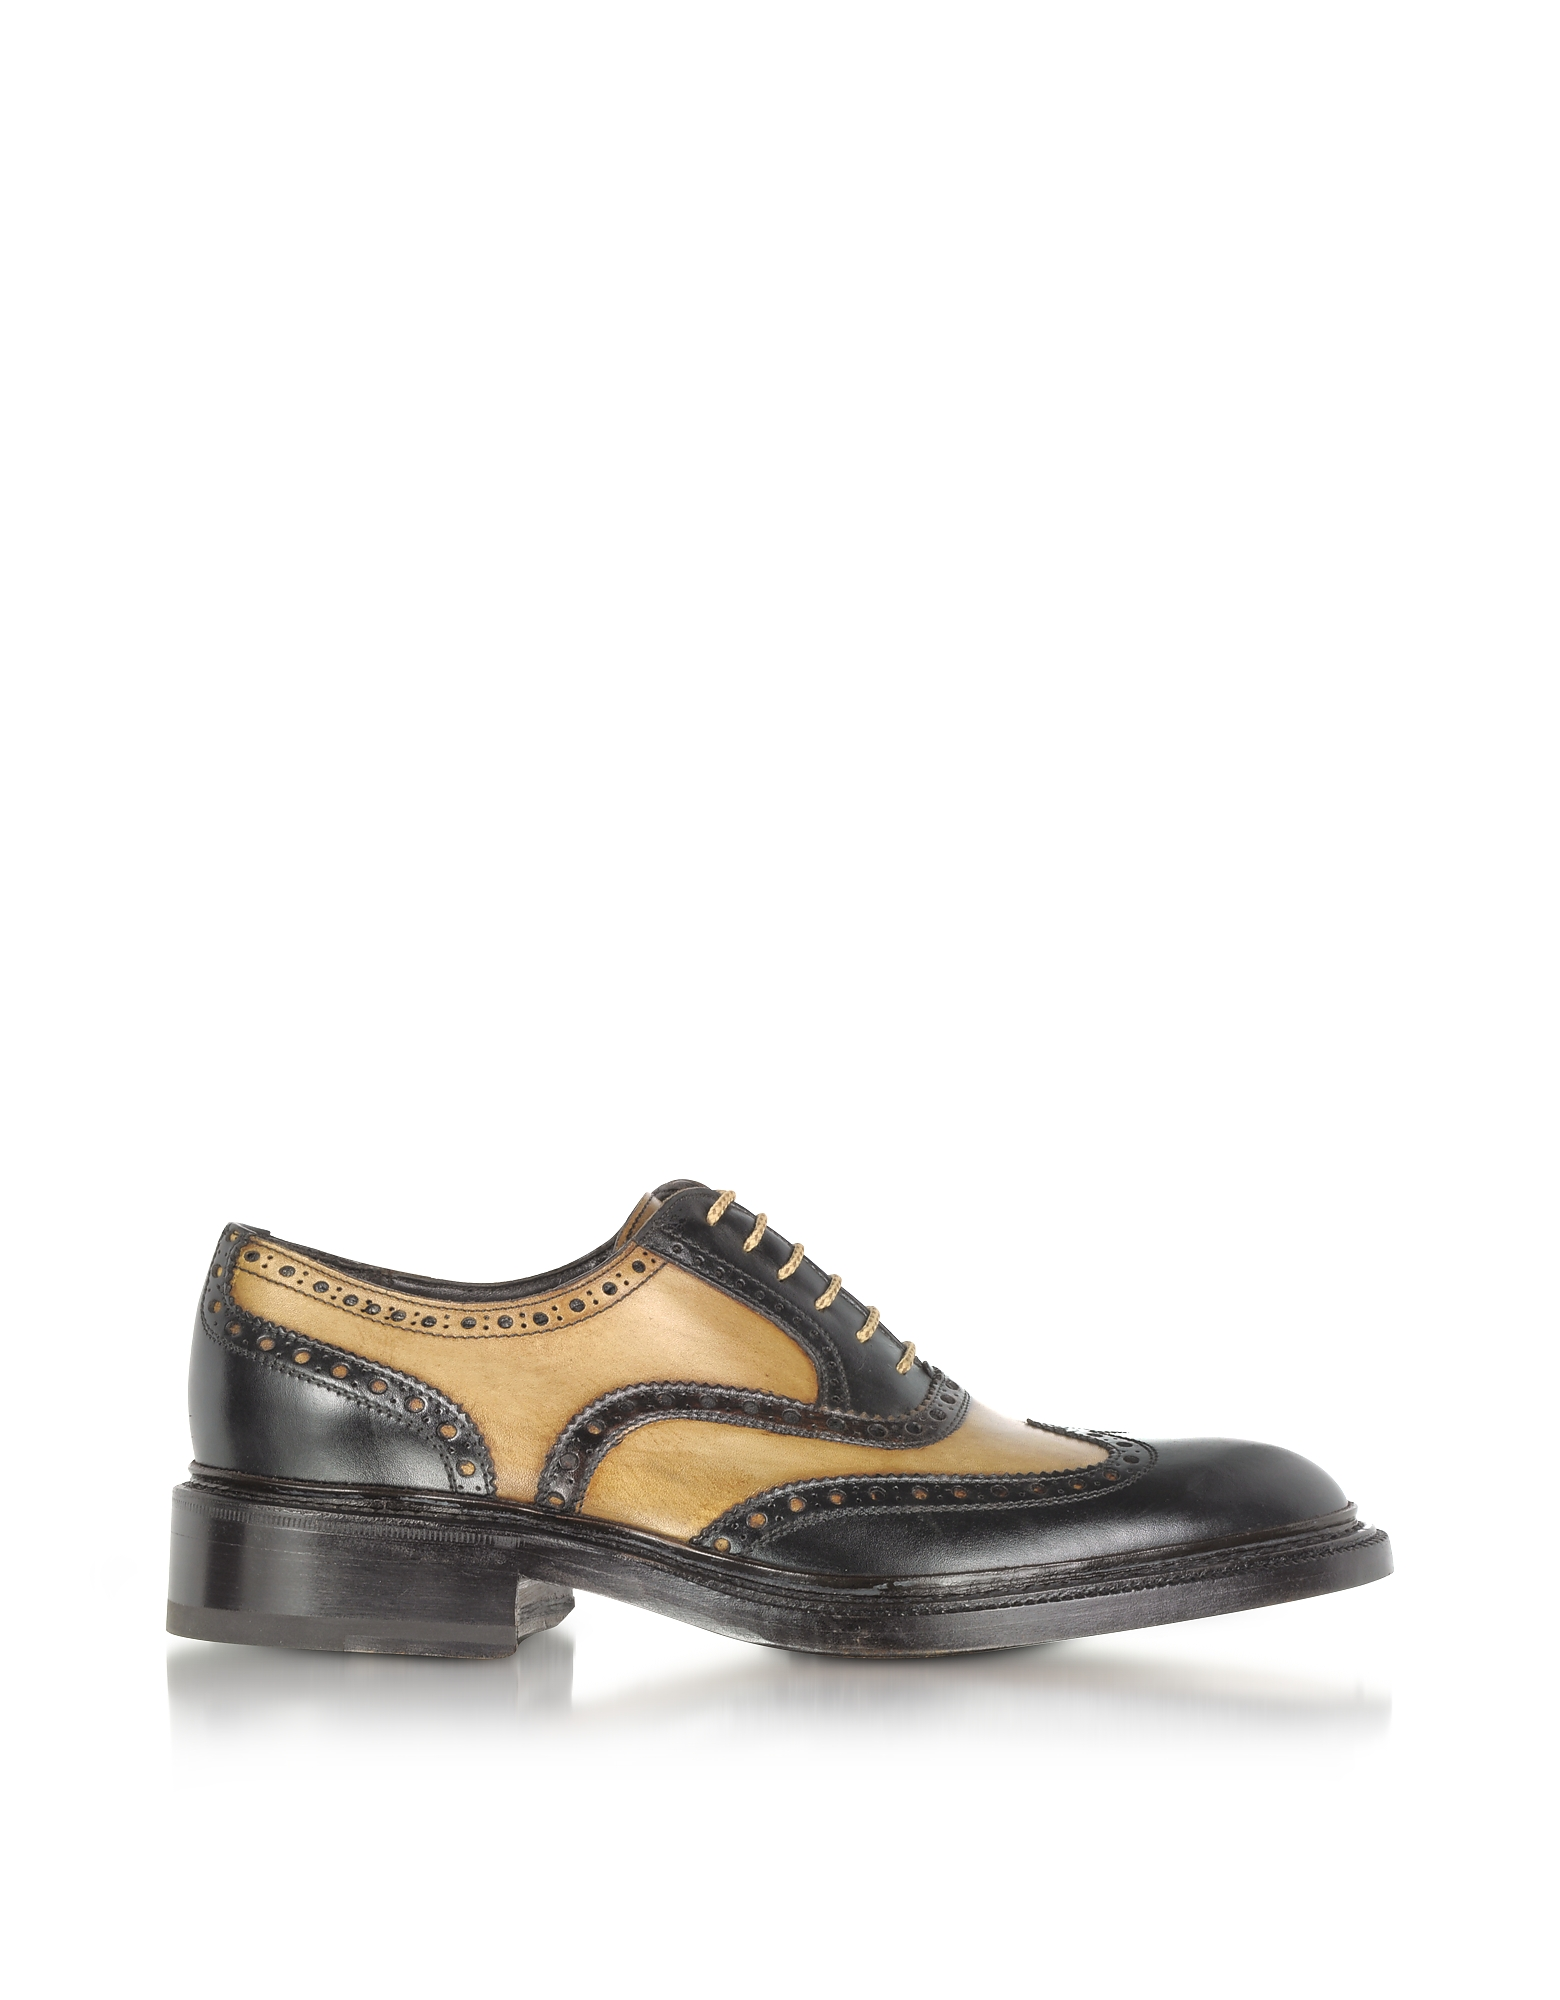 5 Types of Great Gatsby Mens Shoes Boardwalk Empire- Forzieri Designer Shoes Italian Handcrafted Two-tone Wingtip Oxford Shoes $924.00 AT vintagedancer.com